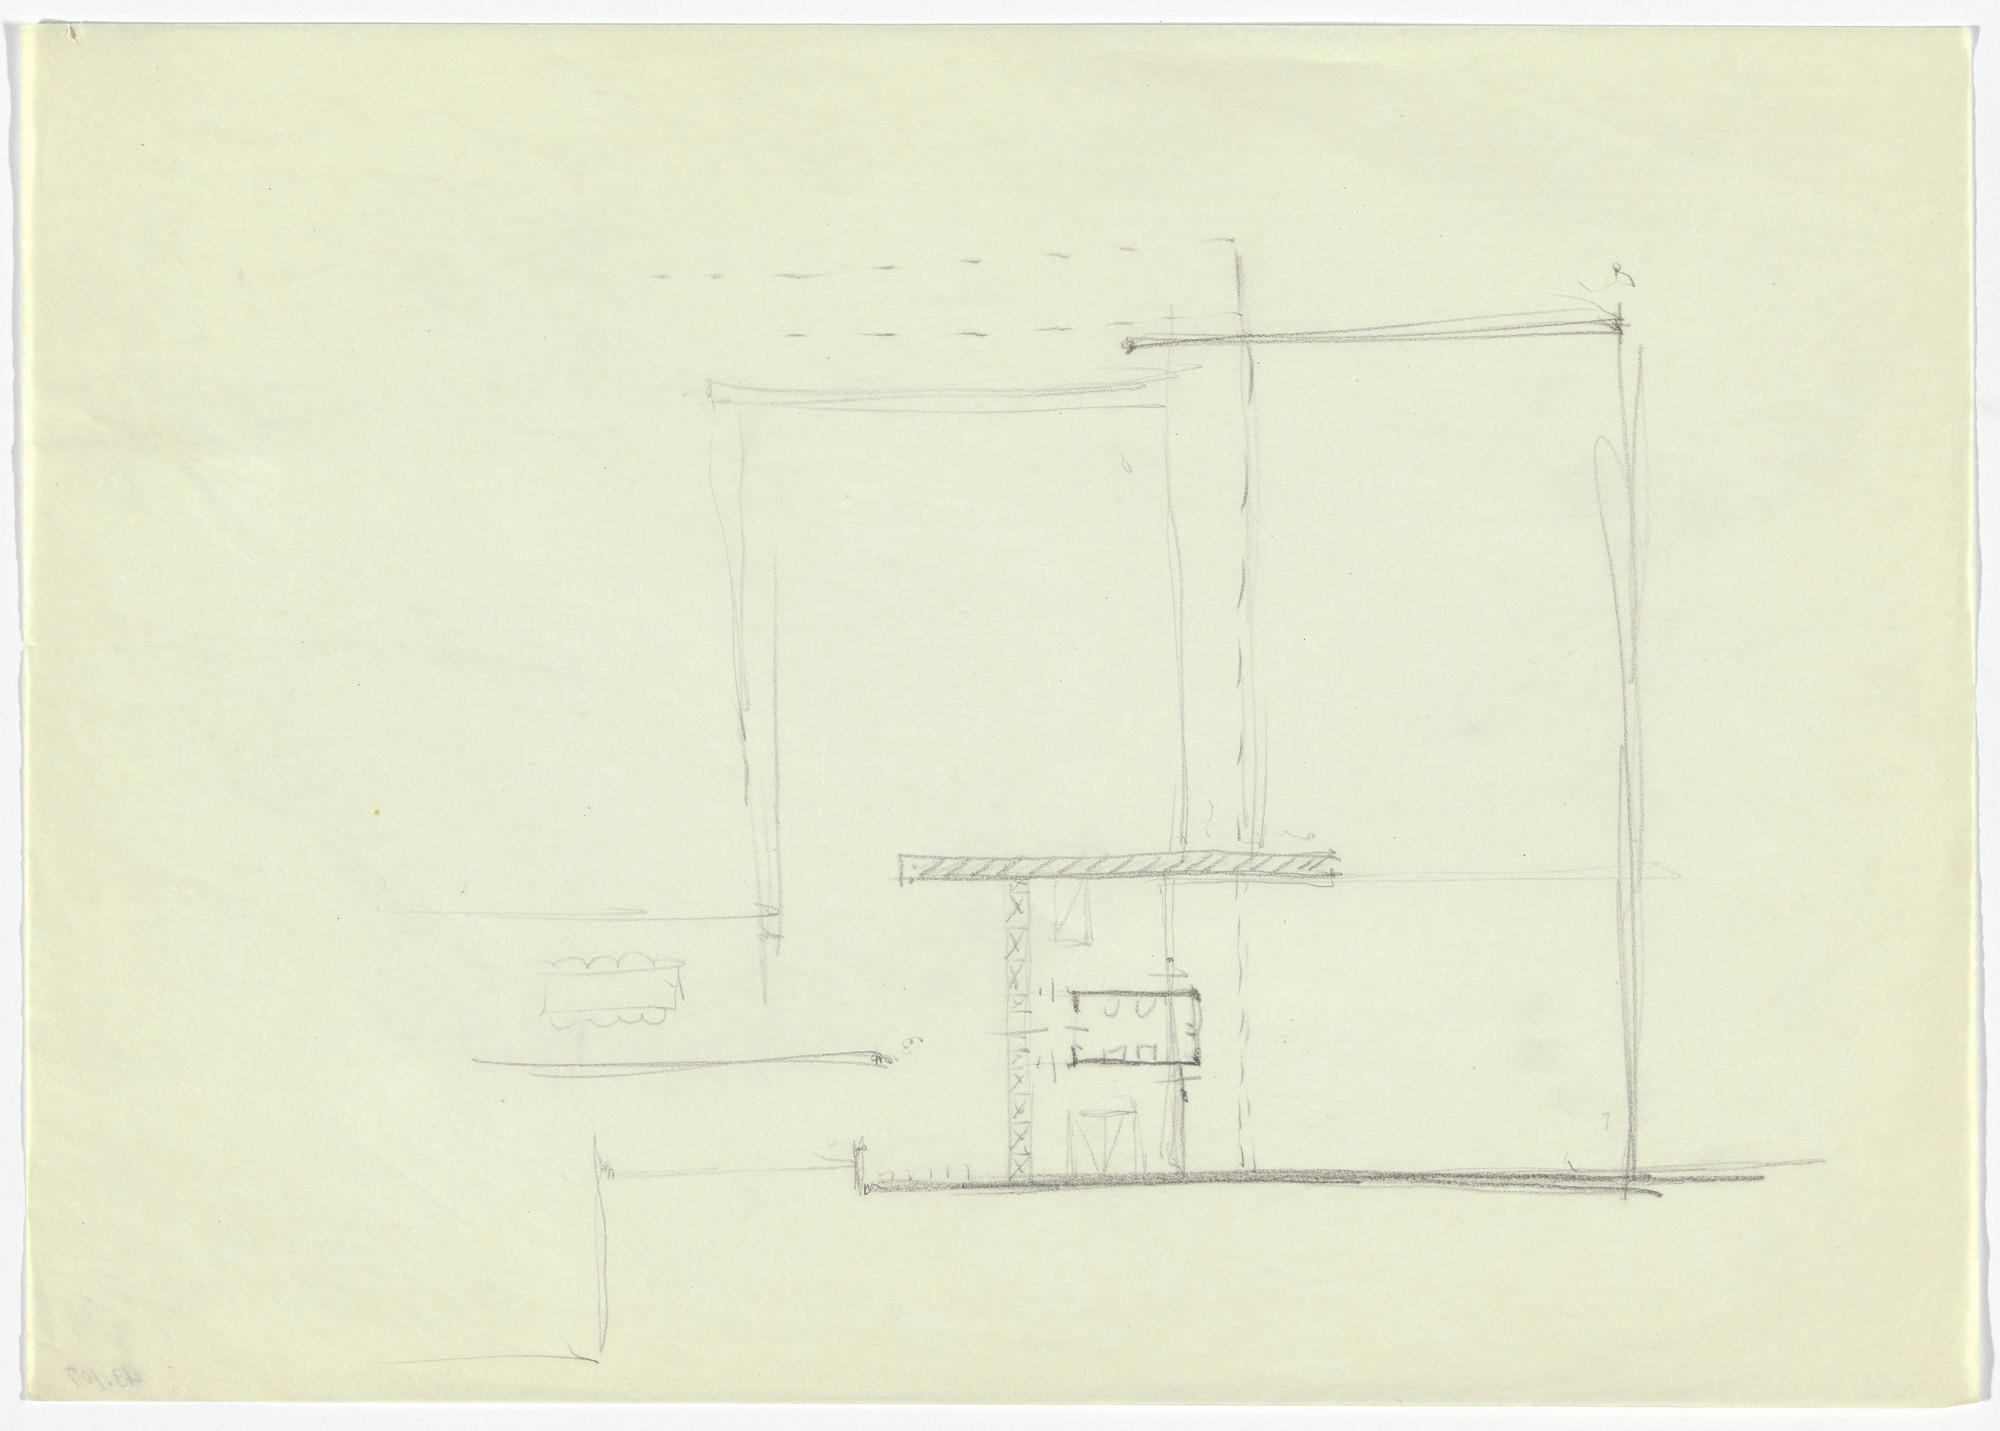 Ludwig Mies van der Rohe. Hubbe-related Study. 1934-1935